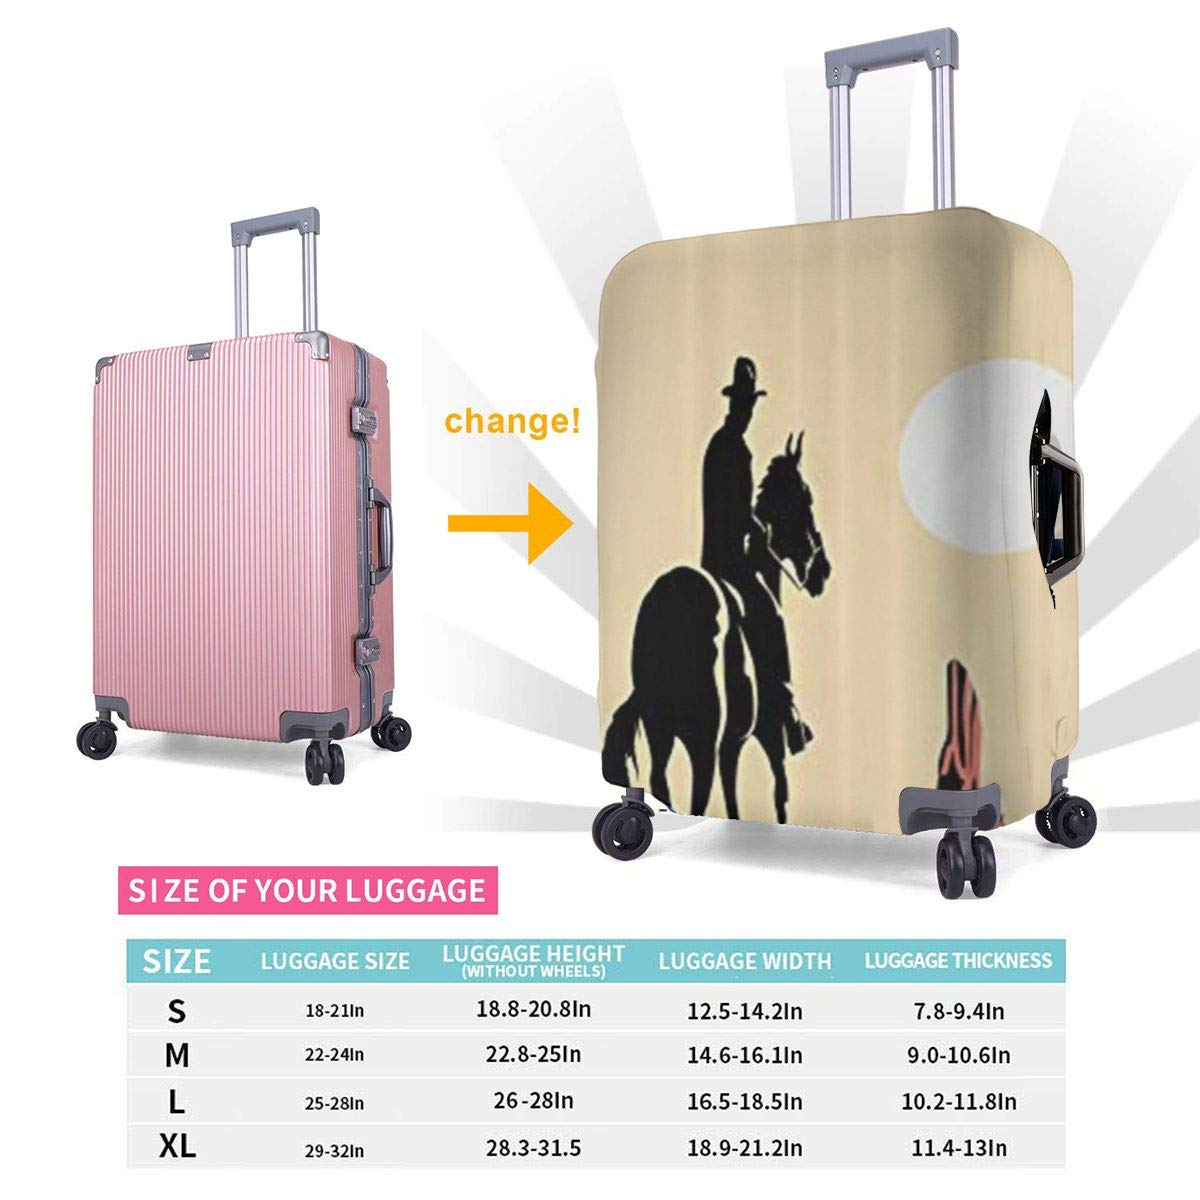 JHNDKJS Flat Wild West3 Travel Luggage Cover Baggage Suitcase Protector Fit for 12-18 Inch Luggage